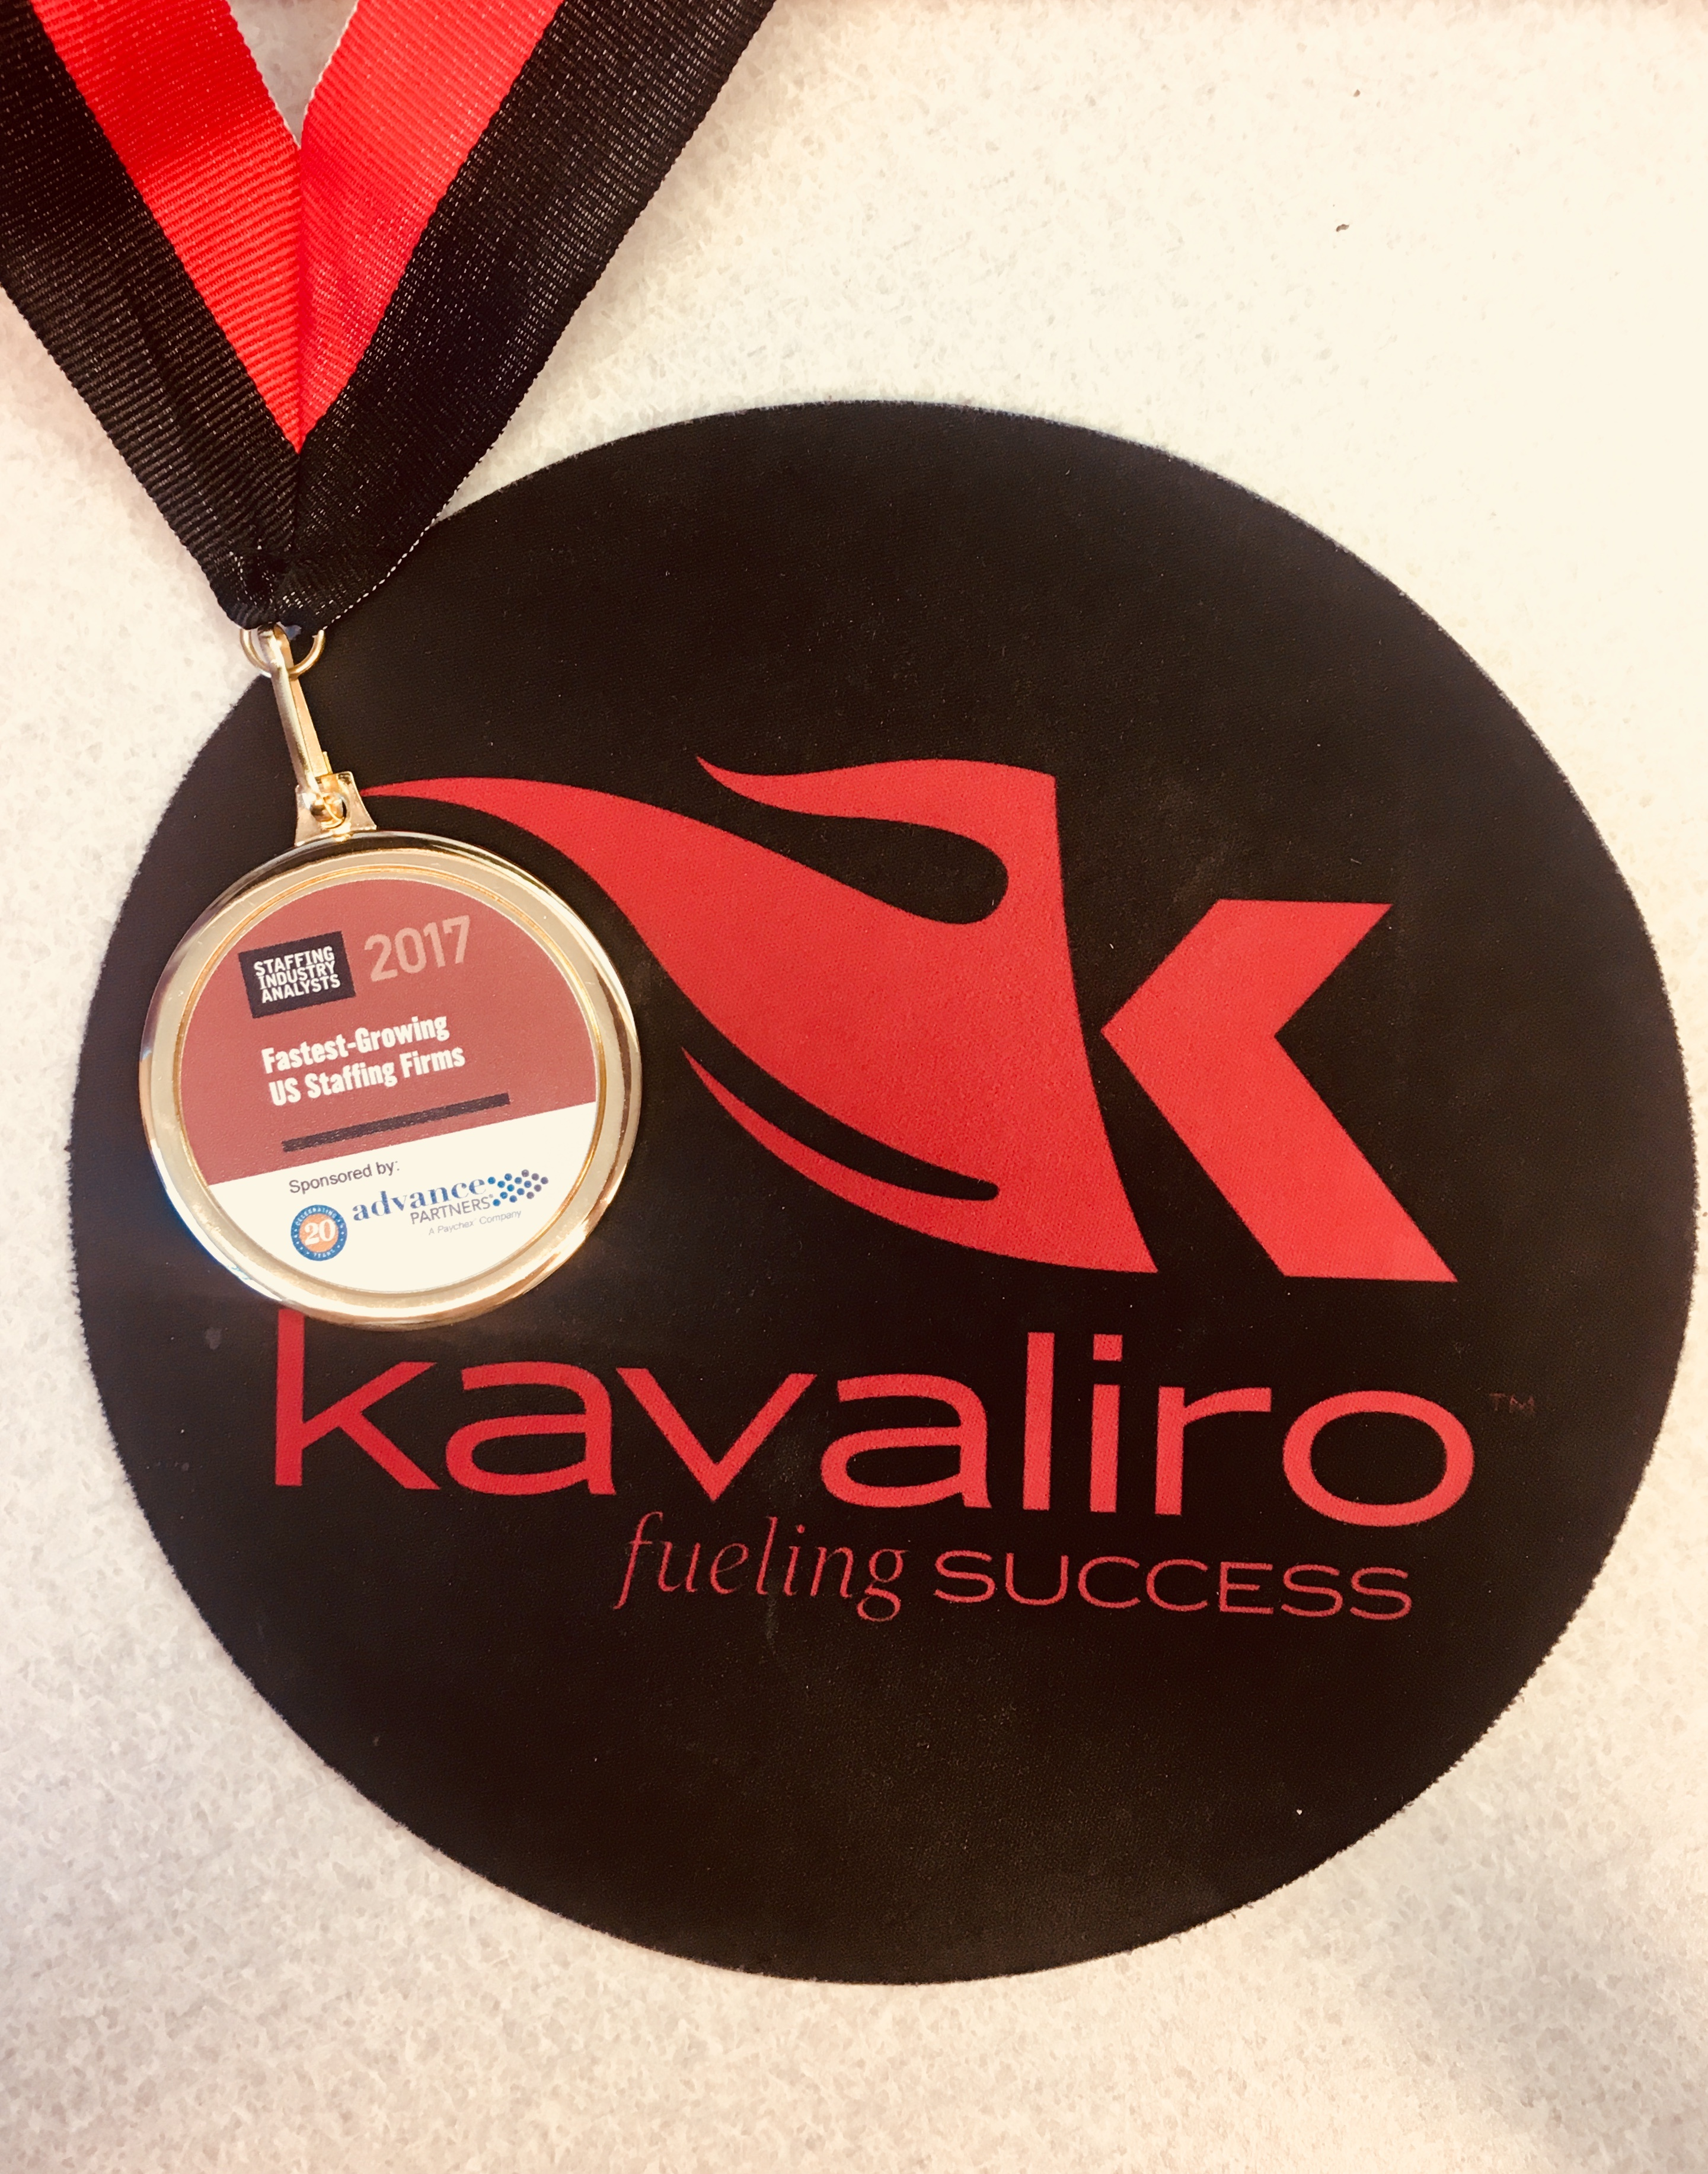 Kavaliro Named A Best Staffing Firm To Work For by Staffing Industry Analyst